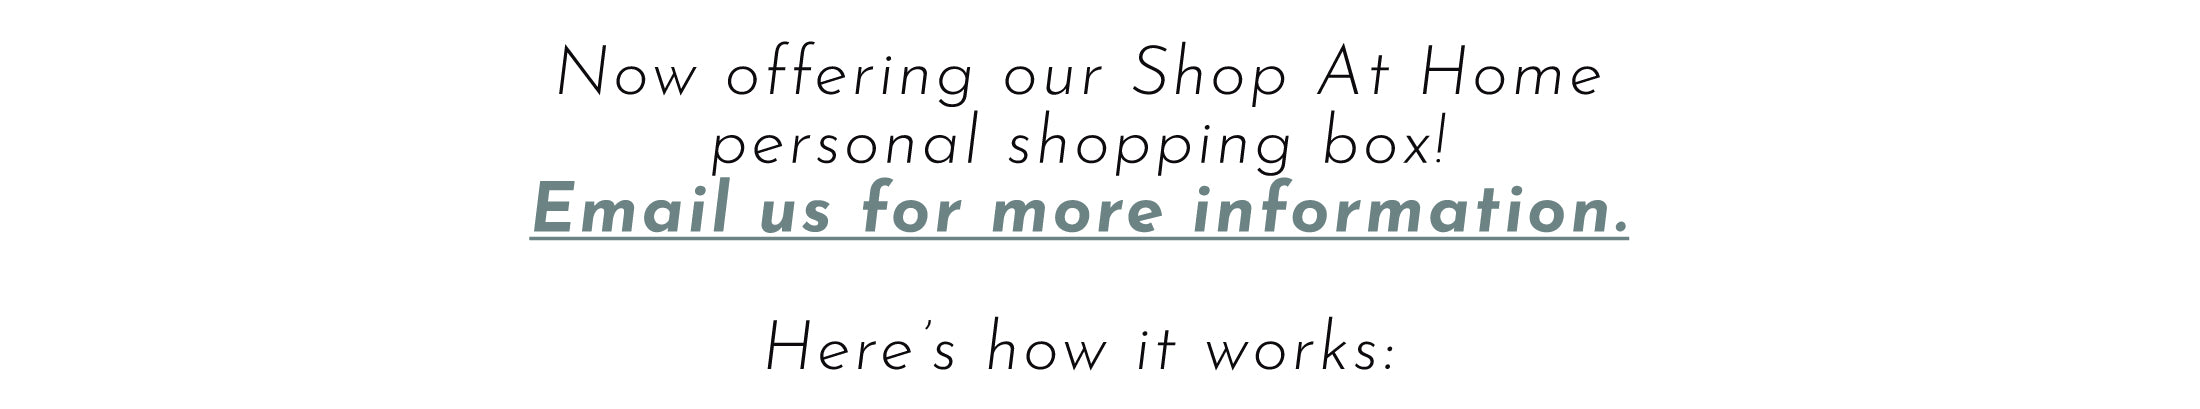 Now offering our Shop At Home  personal shopping box!  Email us for more information.